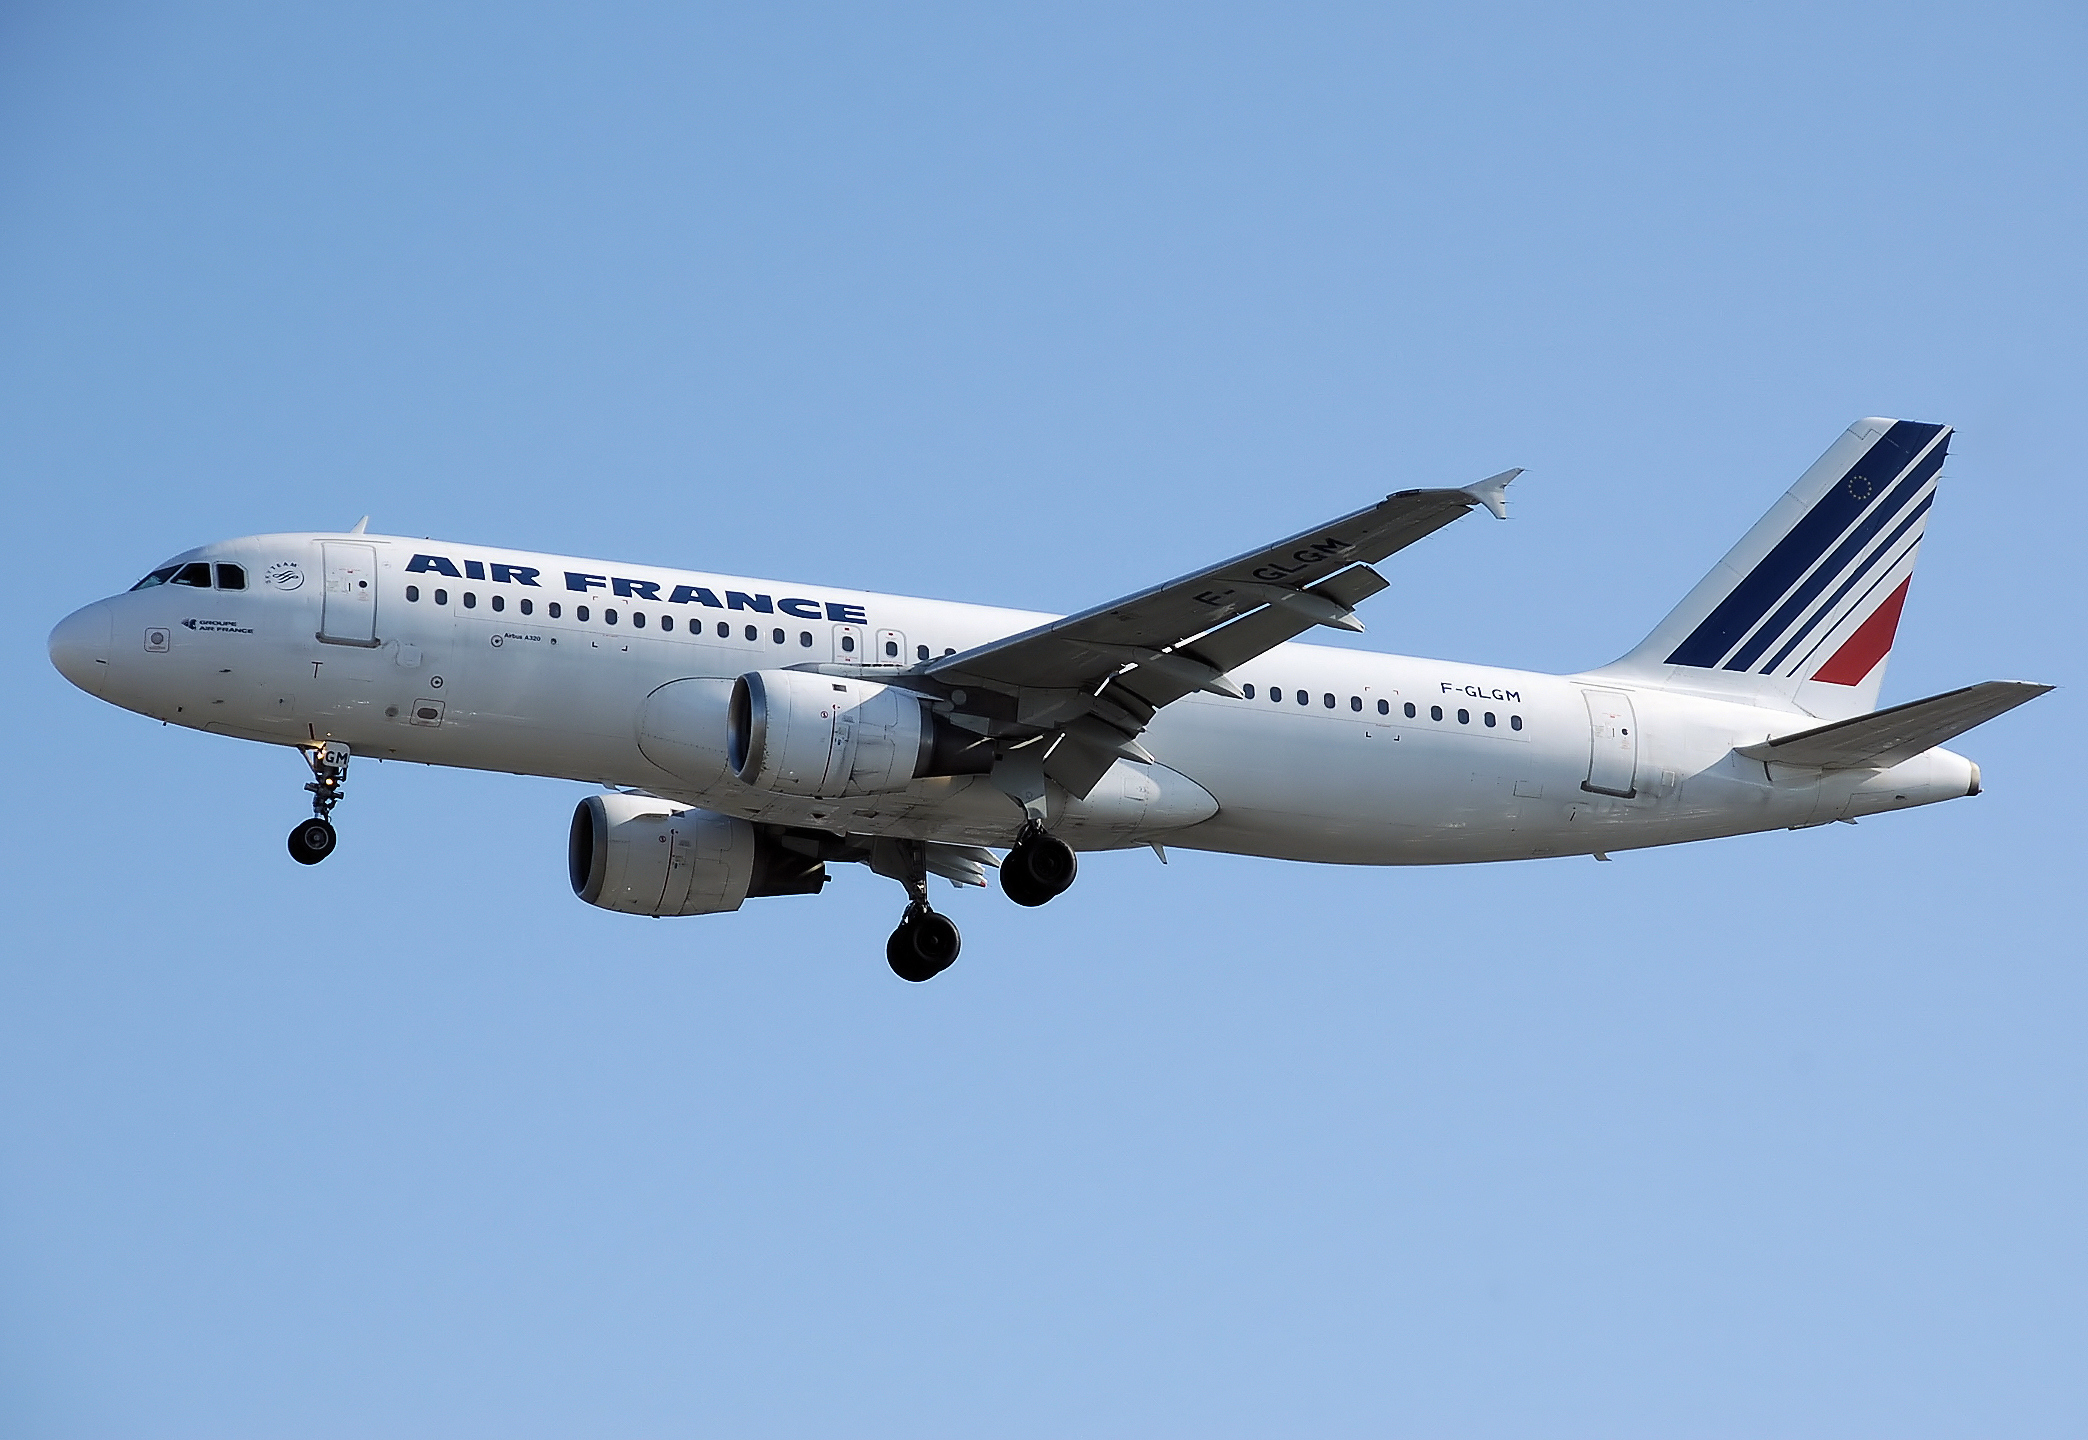 Airbus A320 family - Wikipedia, the free encyclopedia